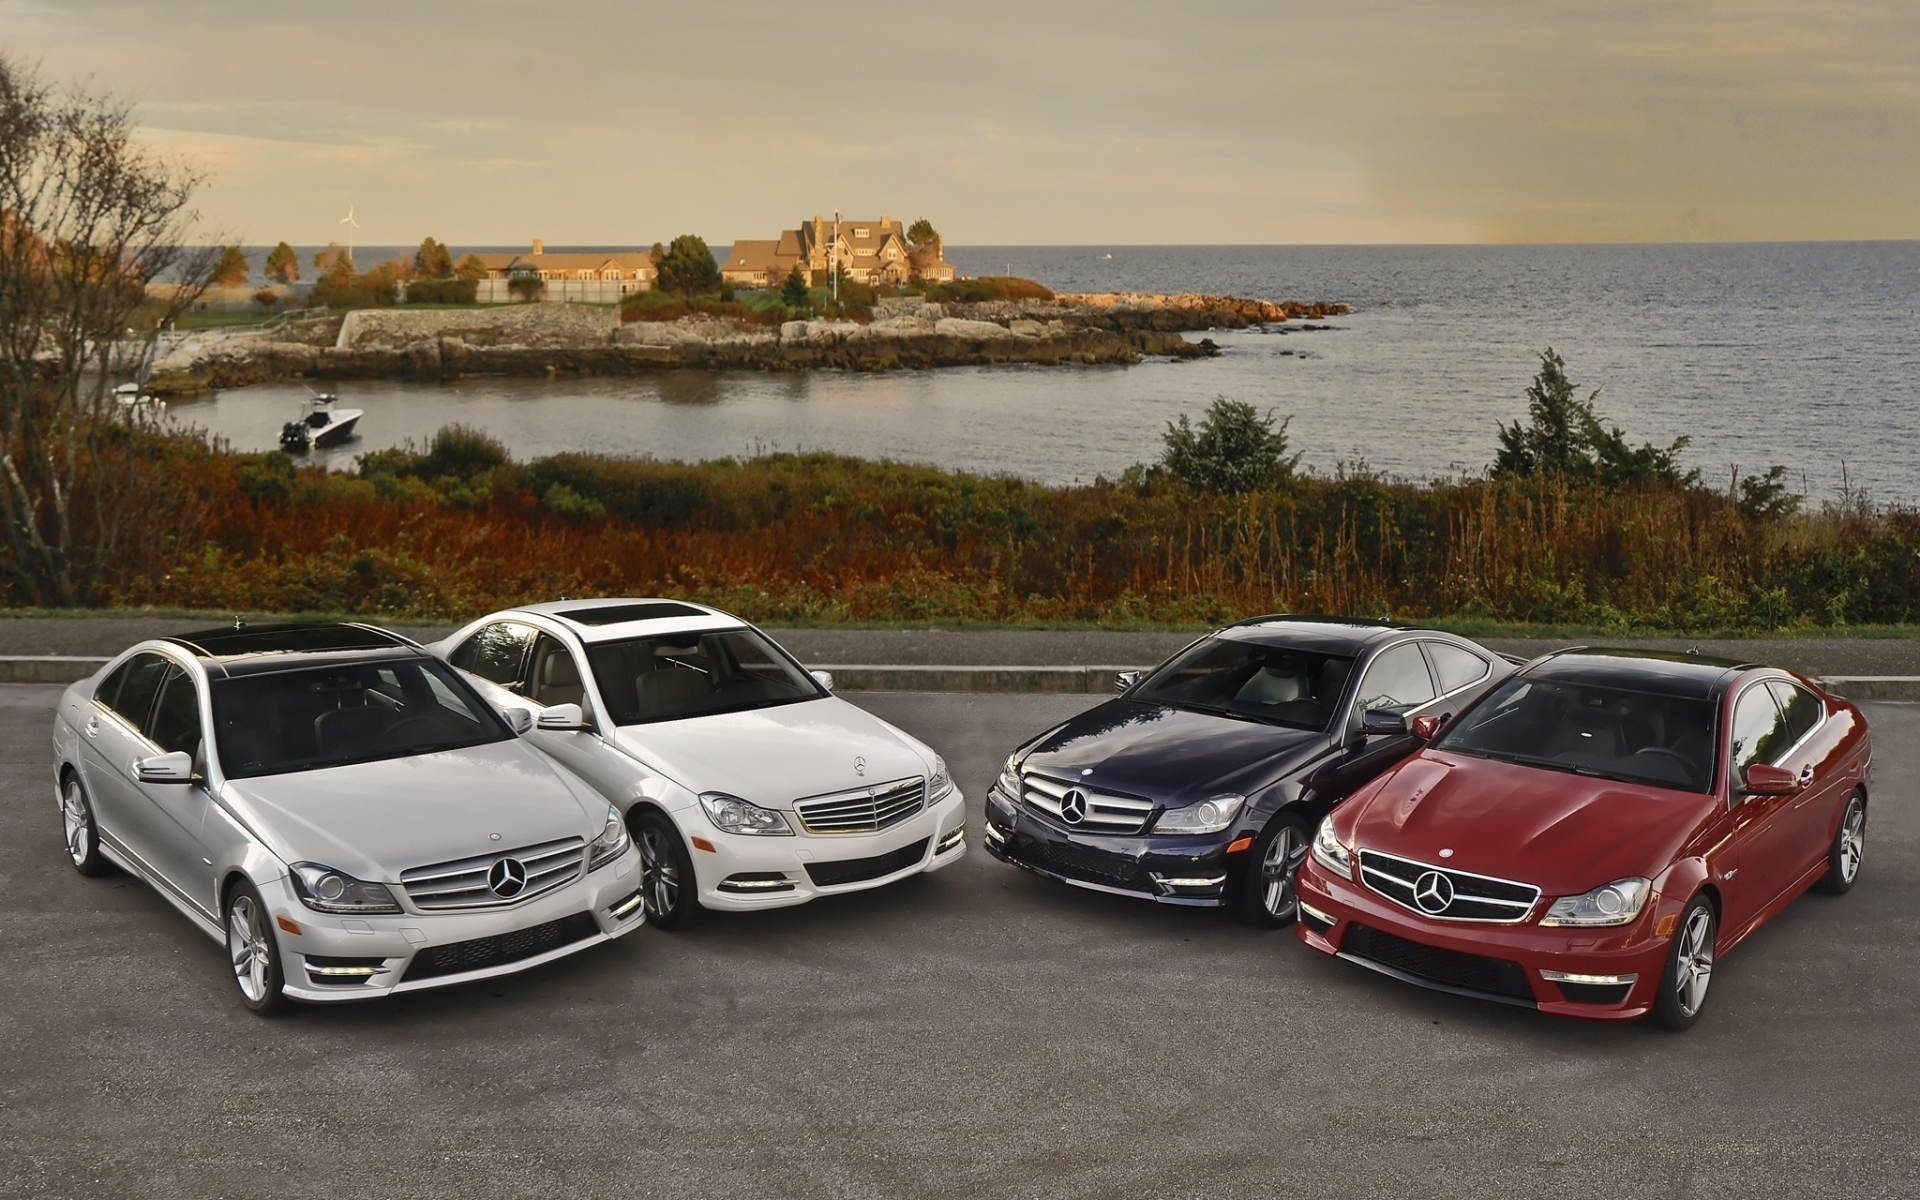 Nice picture of mercedes benz c klasse picture of for Nice mercedes benz